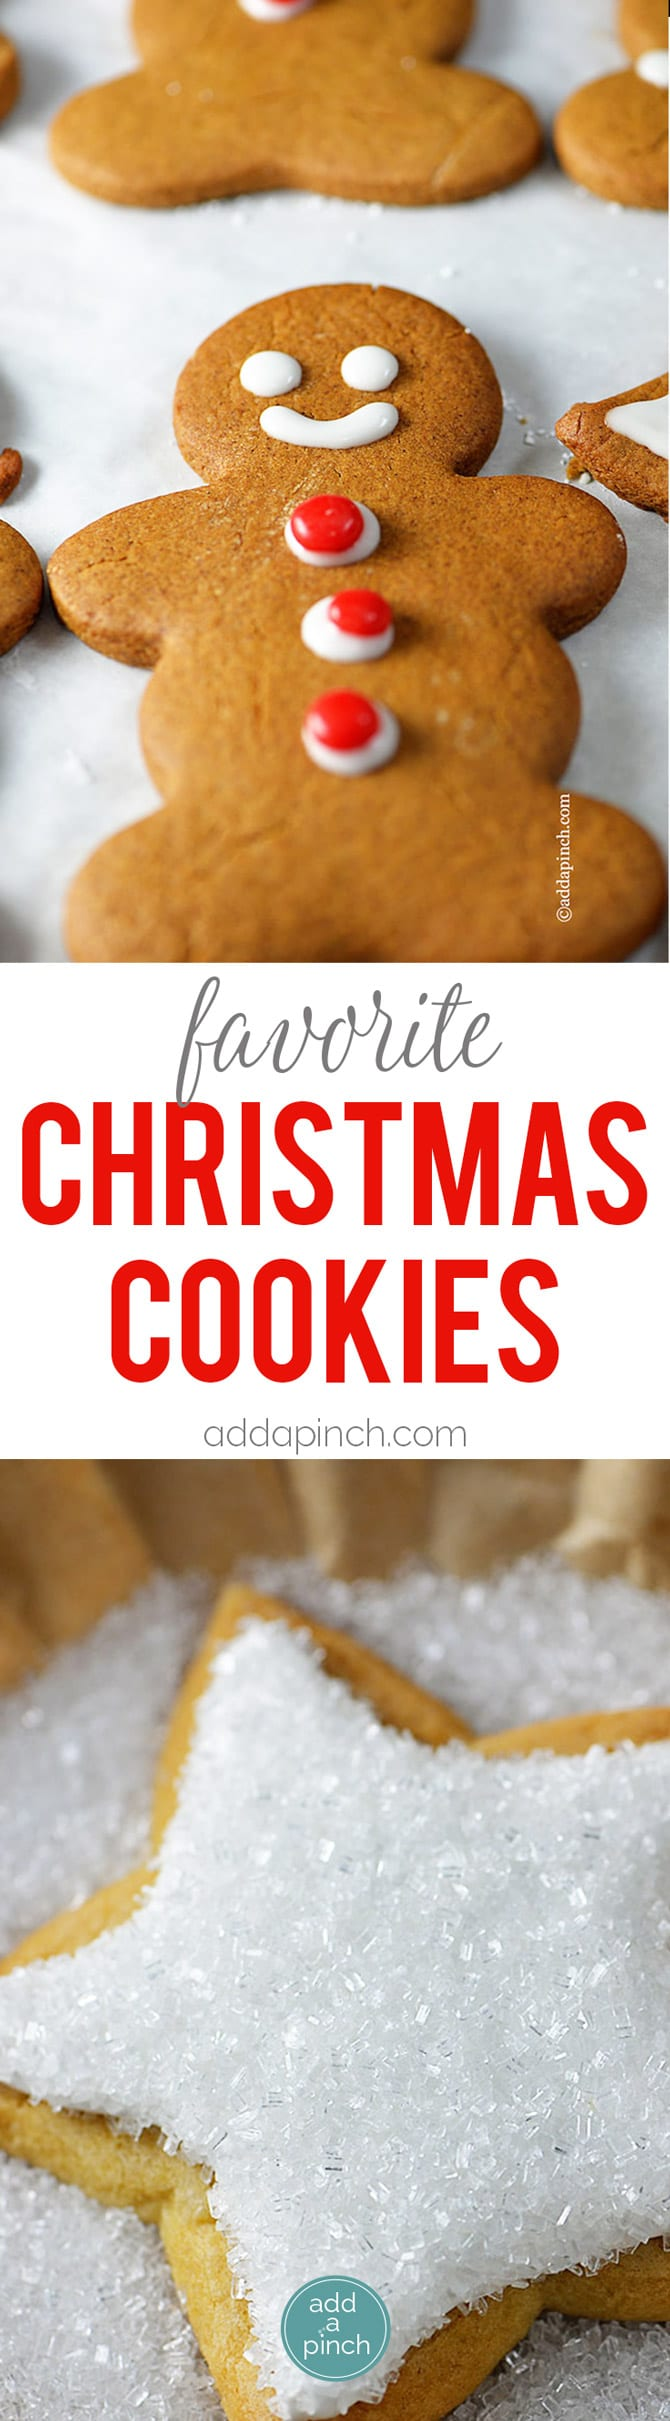 favorite-christmas-cookies-addapinch - Add a Pinch